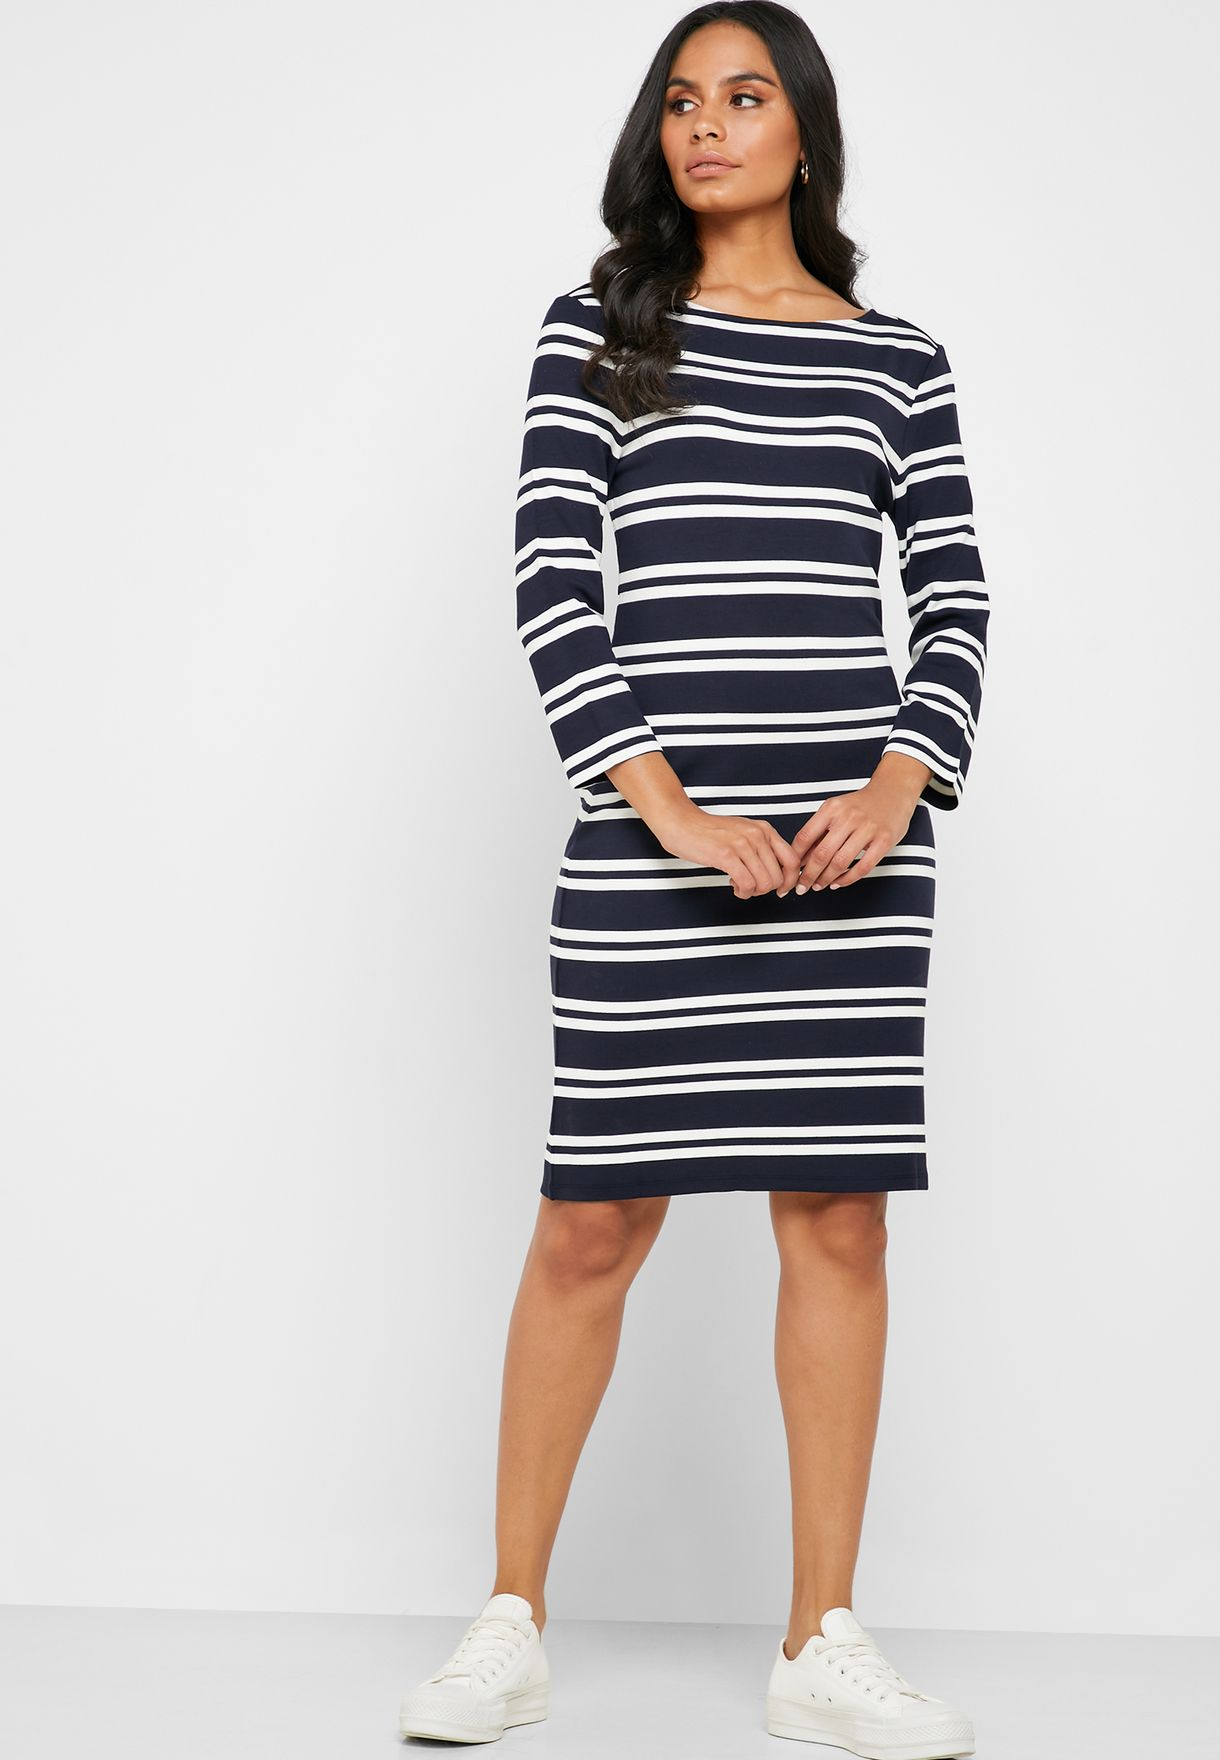 Scoop Neck Striped Dress